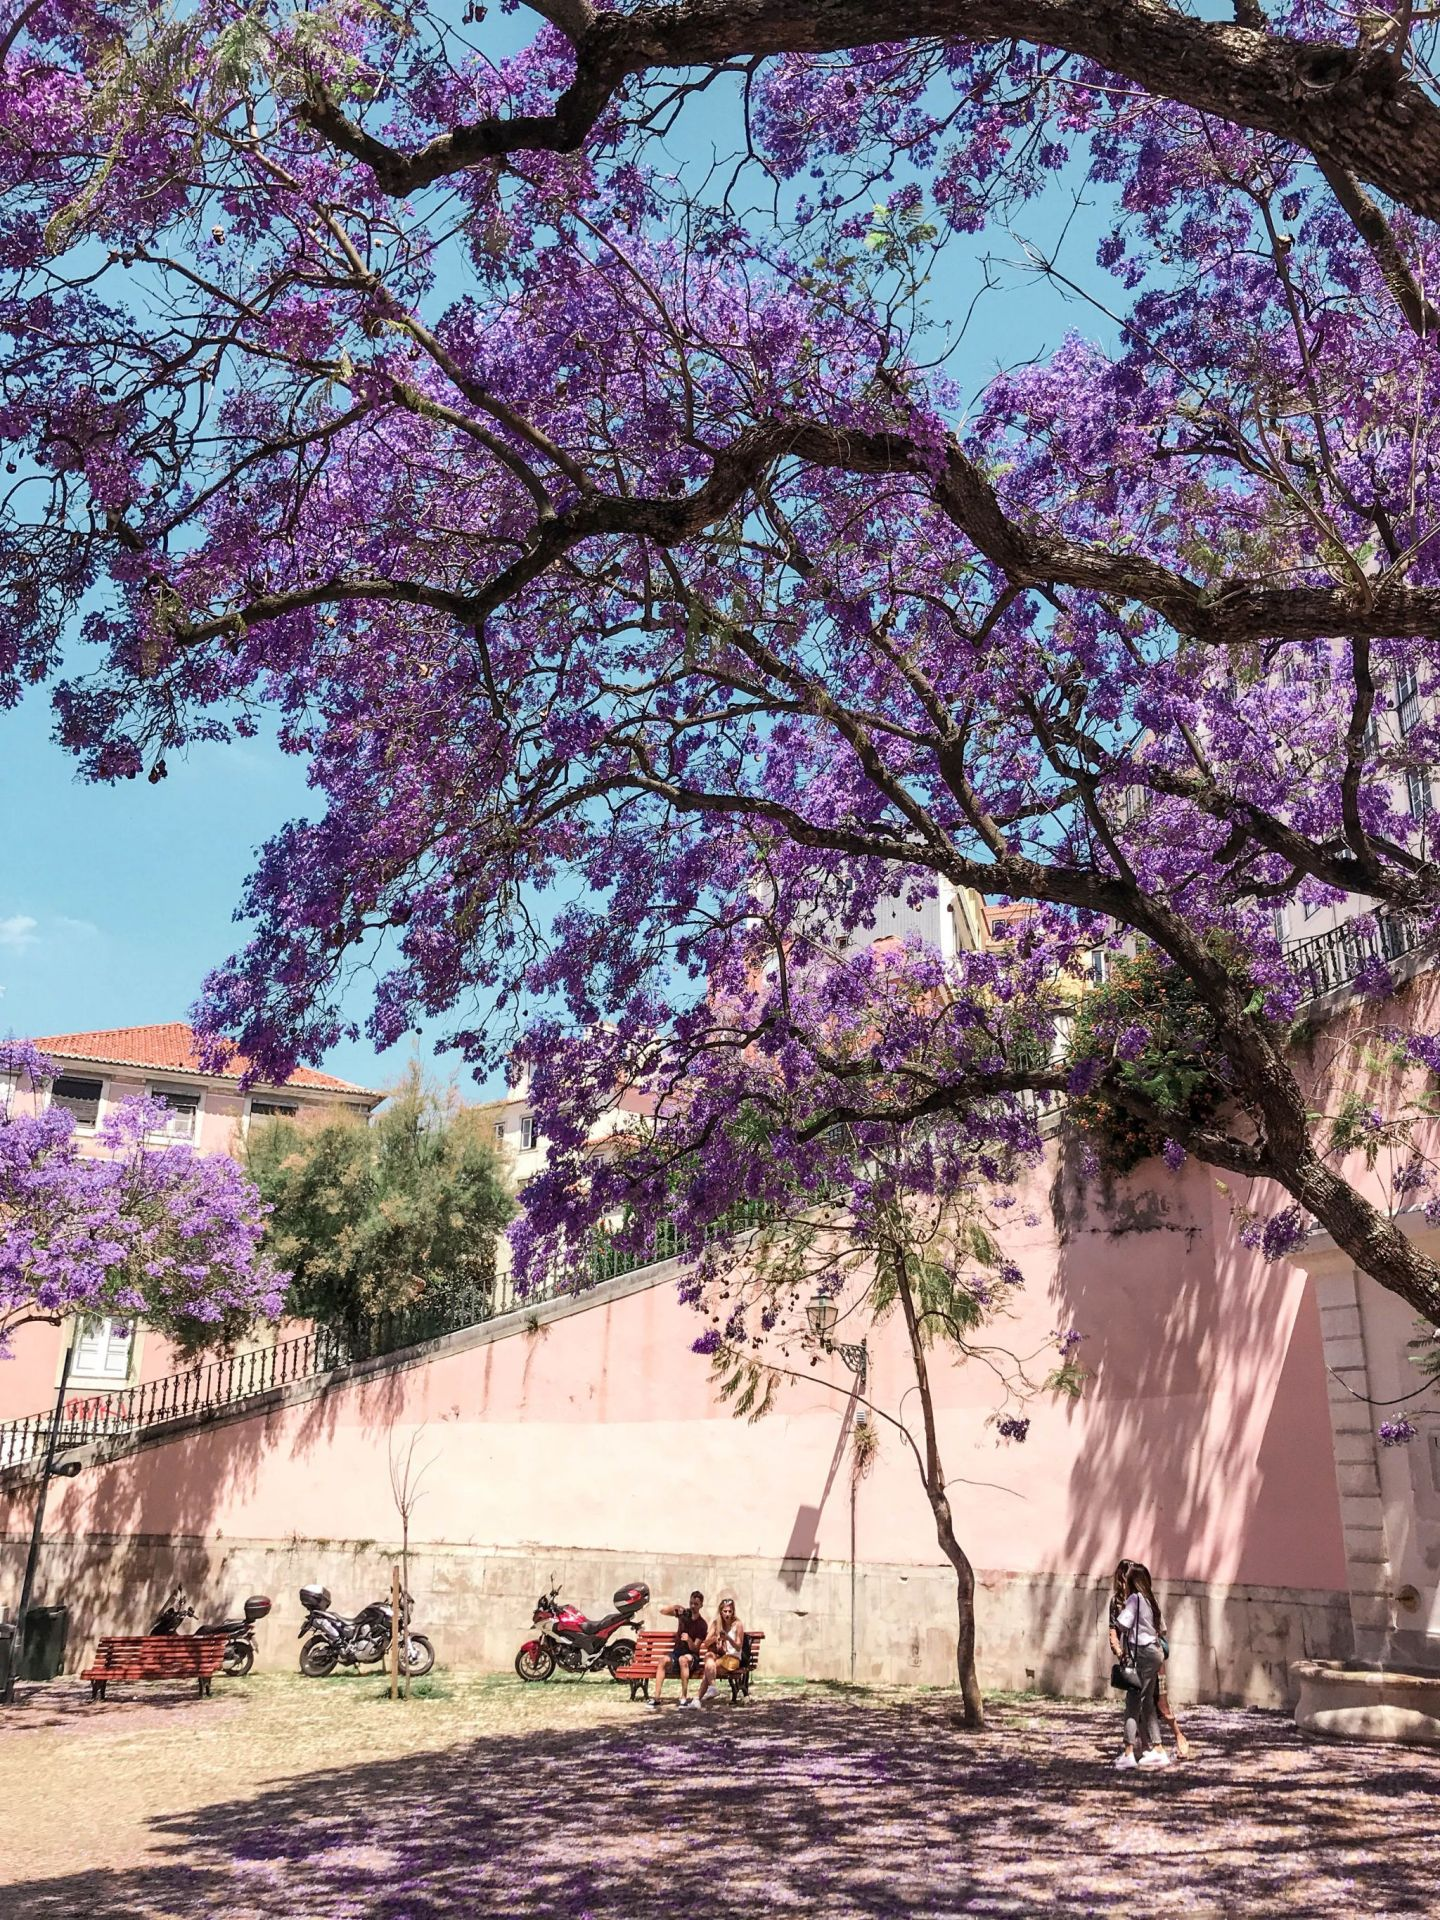 Jacarandas in bloom in Lisbon